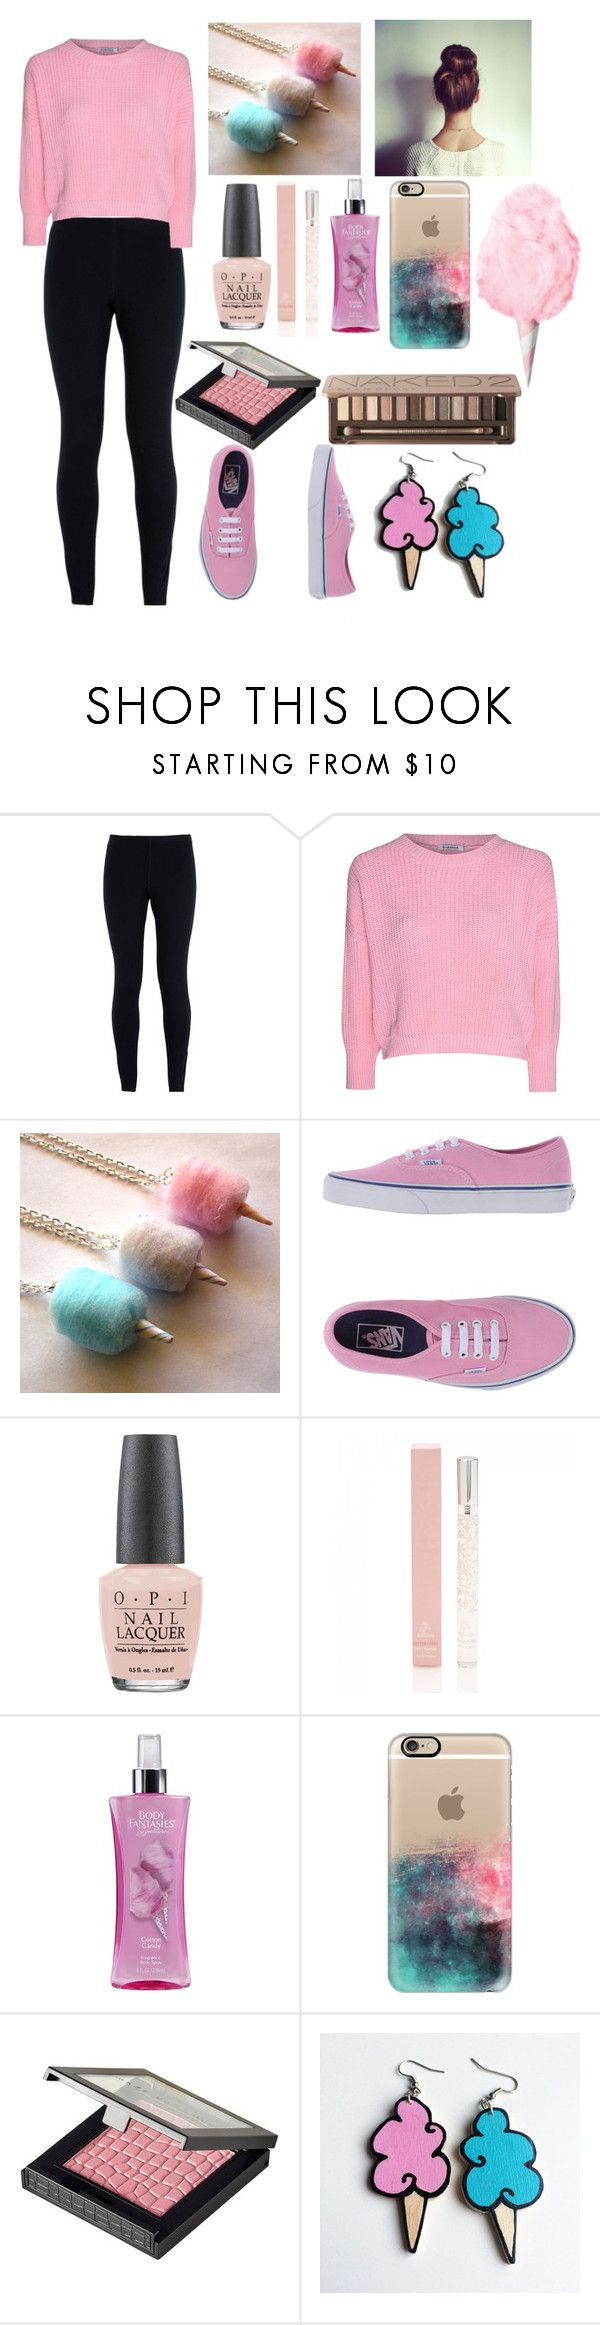 """""""Cotton Candy"""" by fashiongirl3034 on Polyvore featuring NIKE, Glamorous, Cotton Candy, Vans, OPI, Forever New, Casetify, MAKE UP STORE, Junk Food Clothing and Urban Decay"""